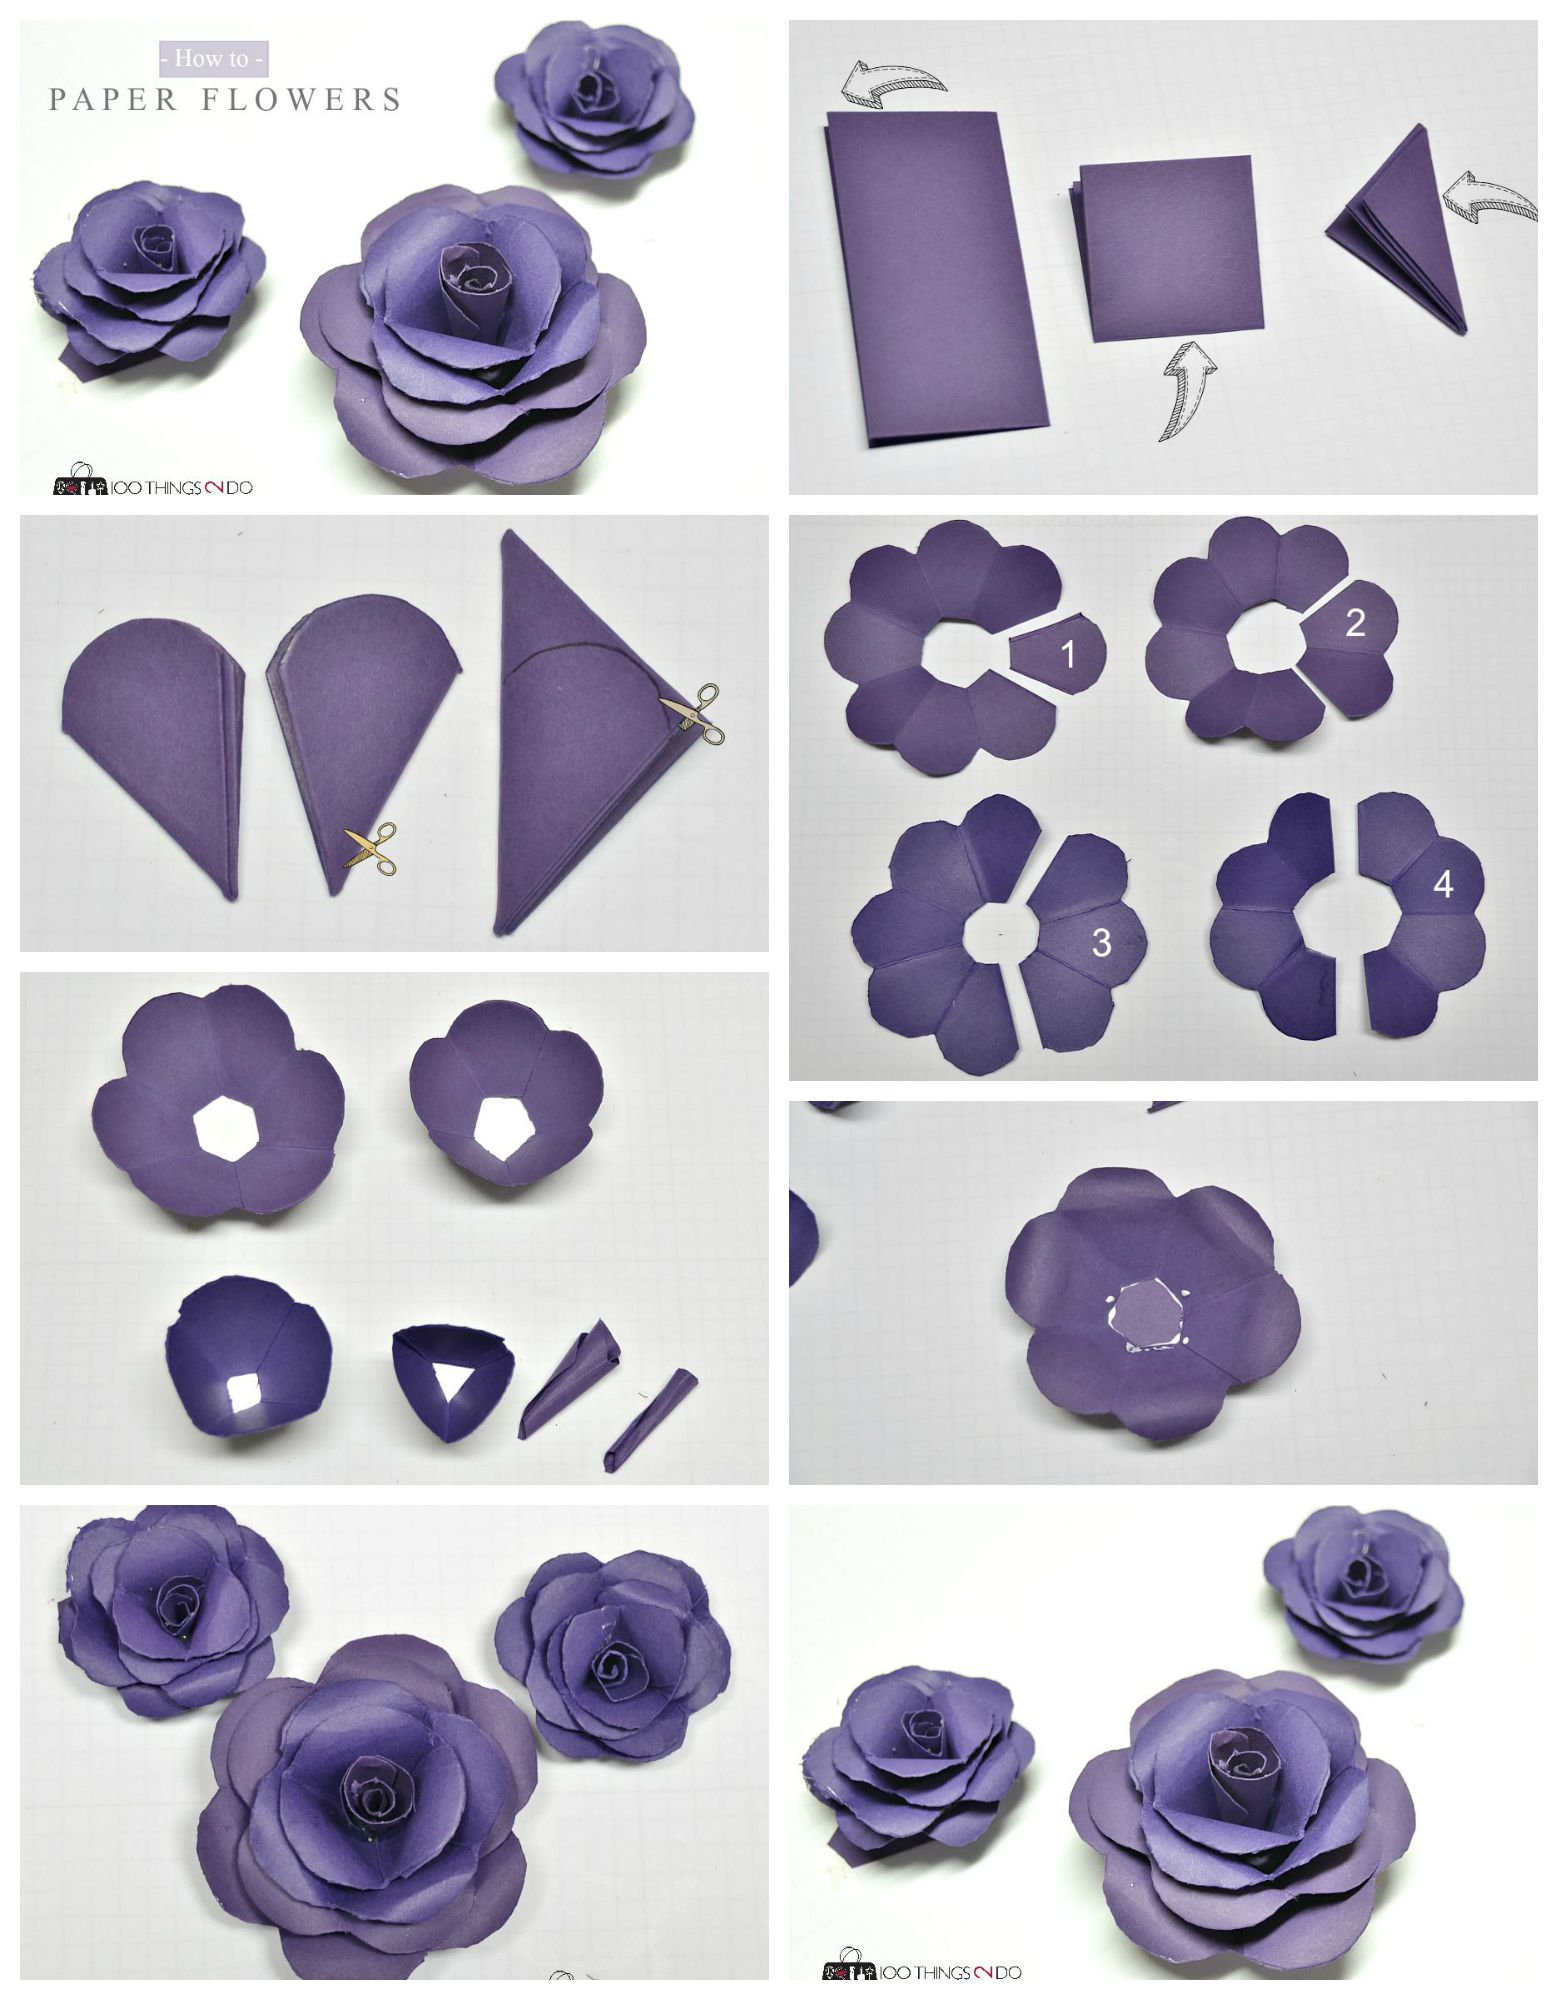 How to make paper flowers 100 things 2 do how to make paper flowers tutorial mightylinksfo